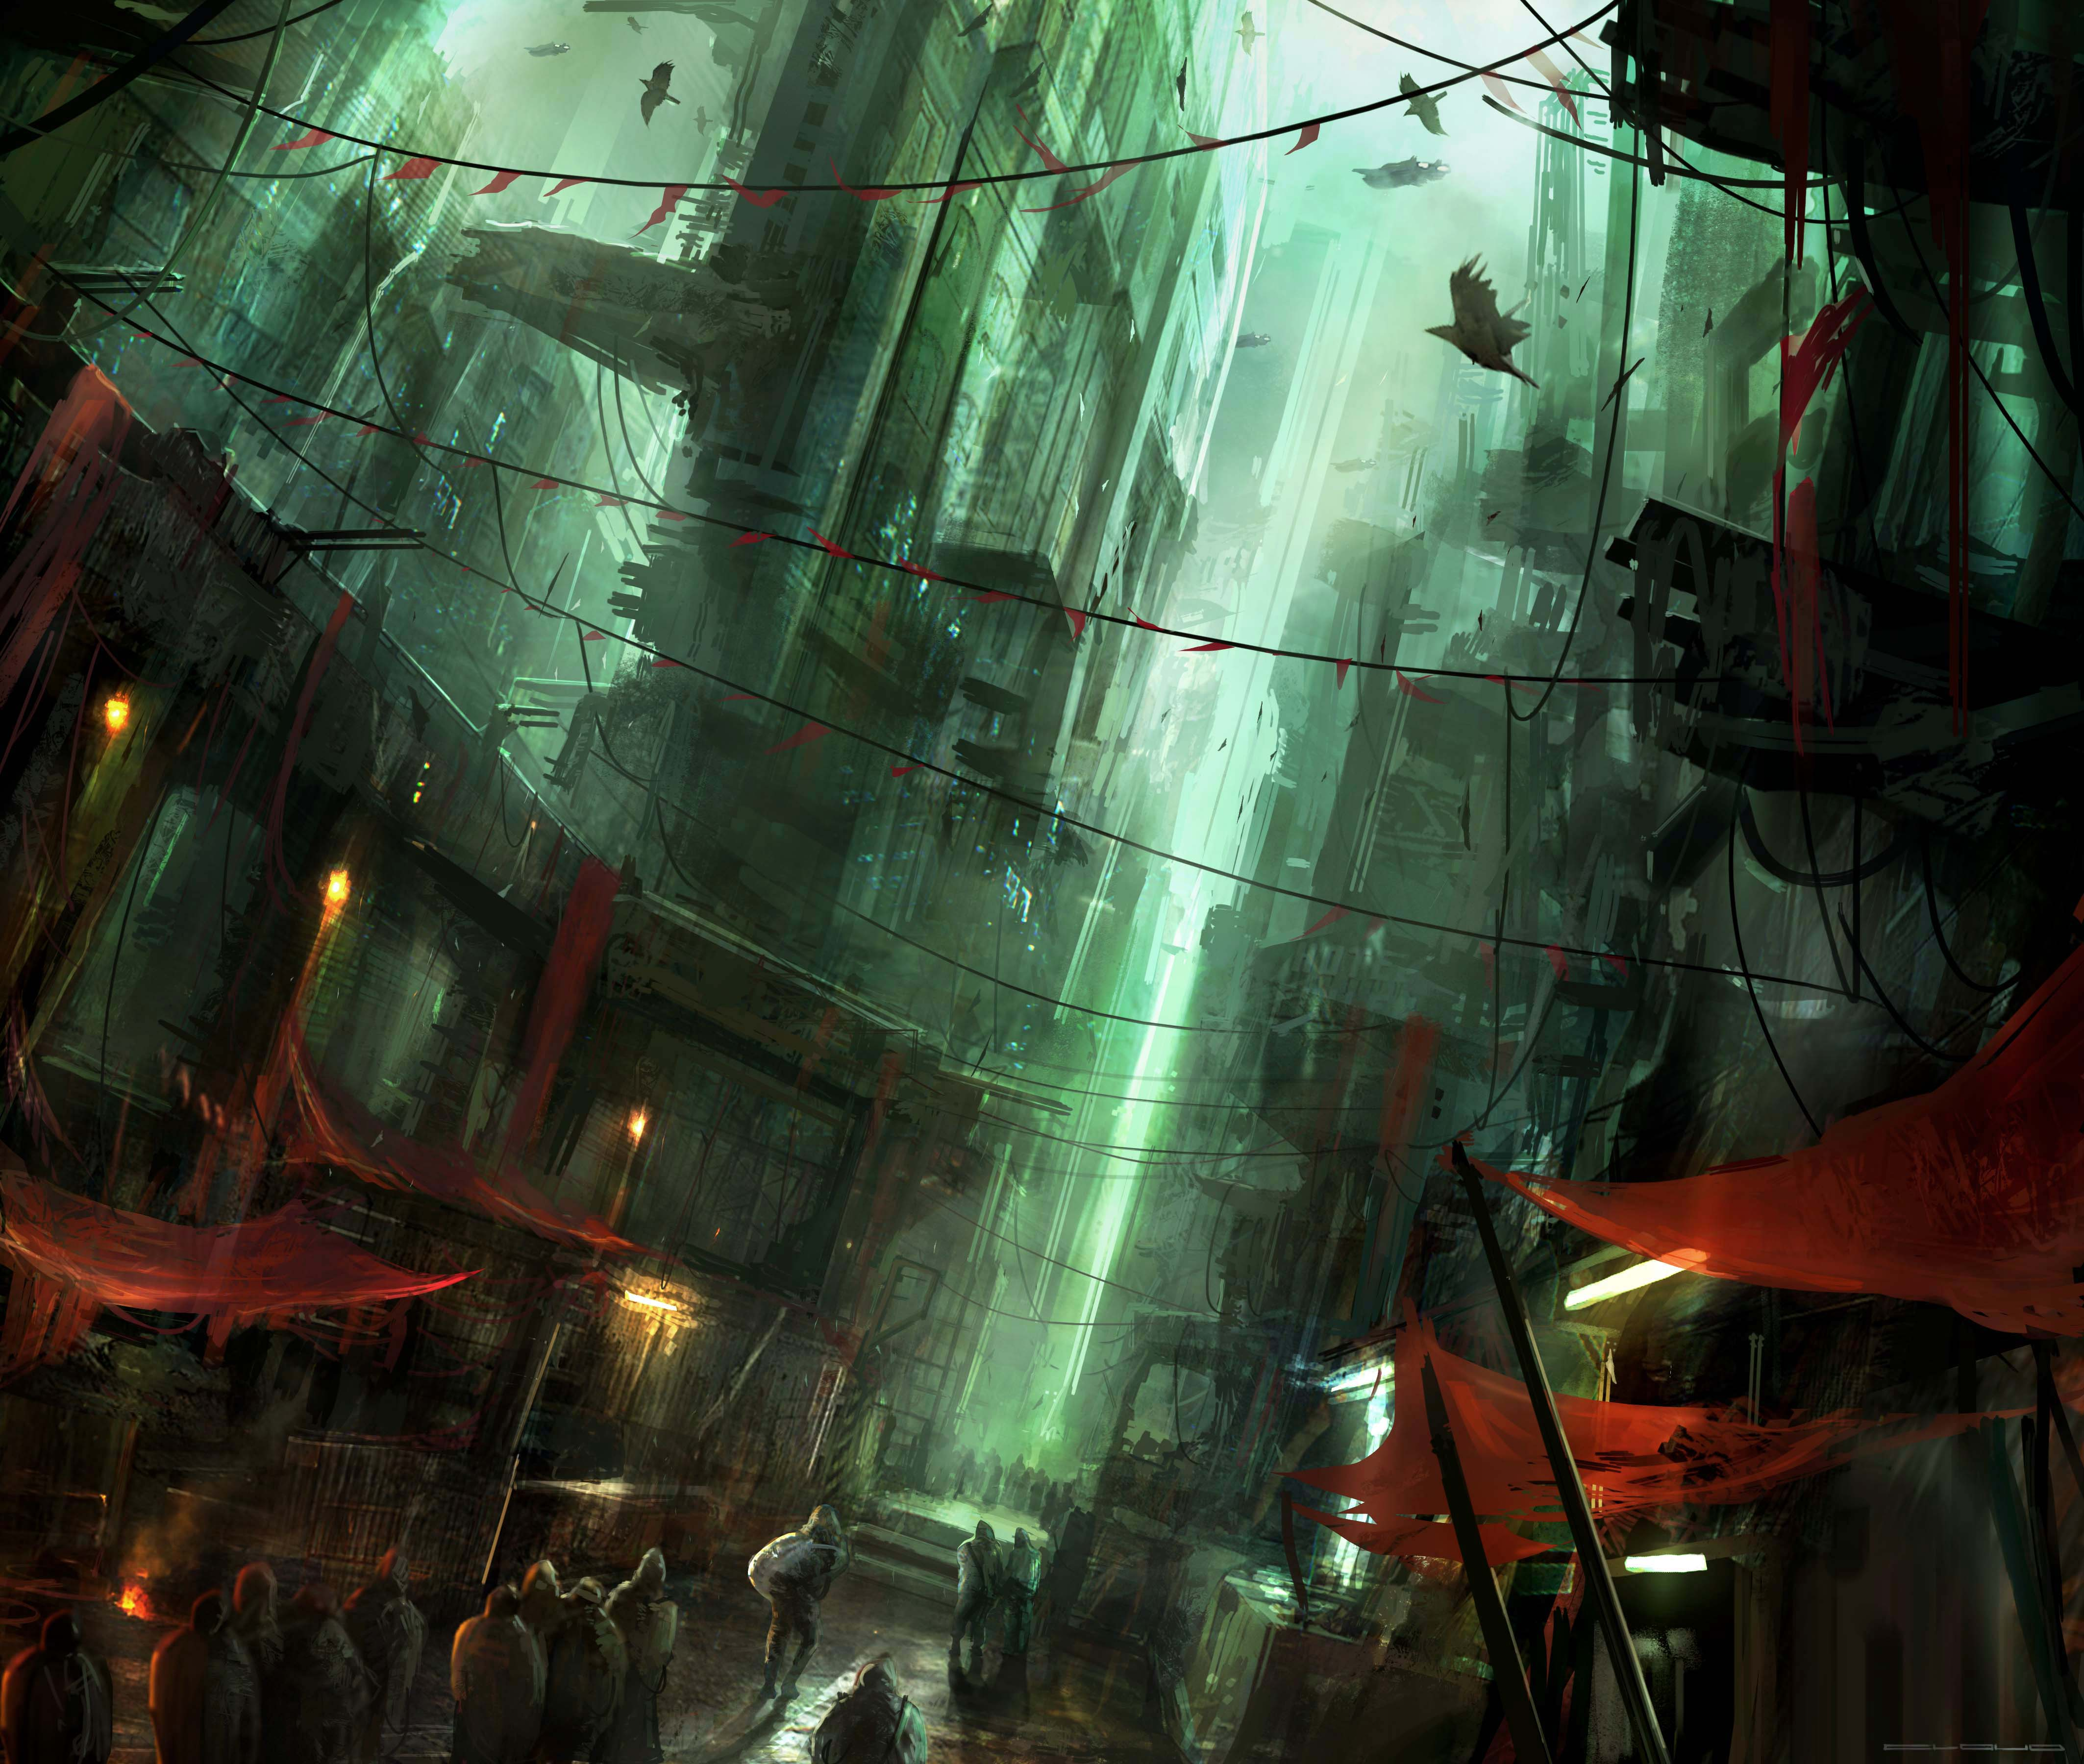 clandestine_by_cloudminedesign-d66naix.jpg - -